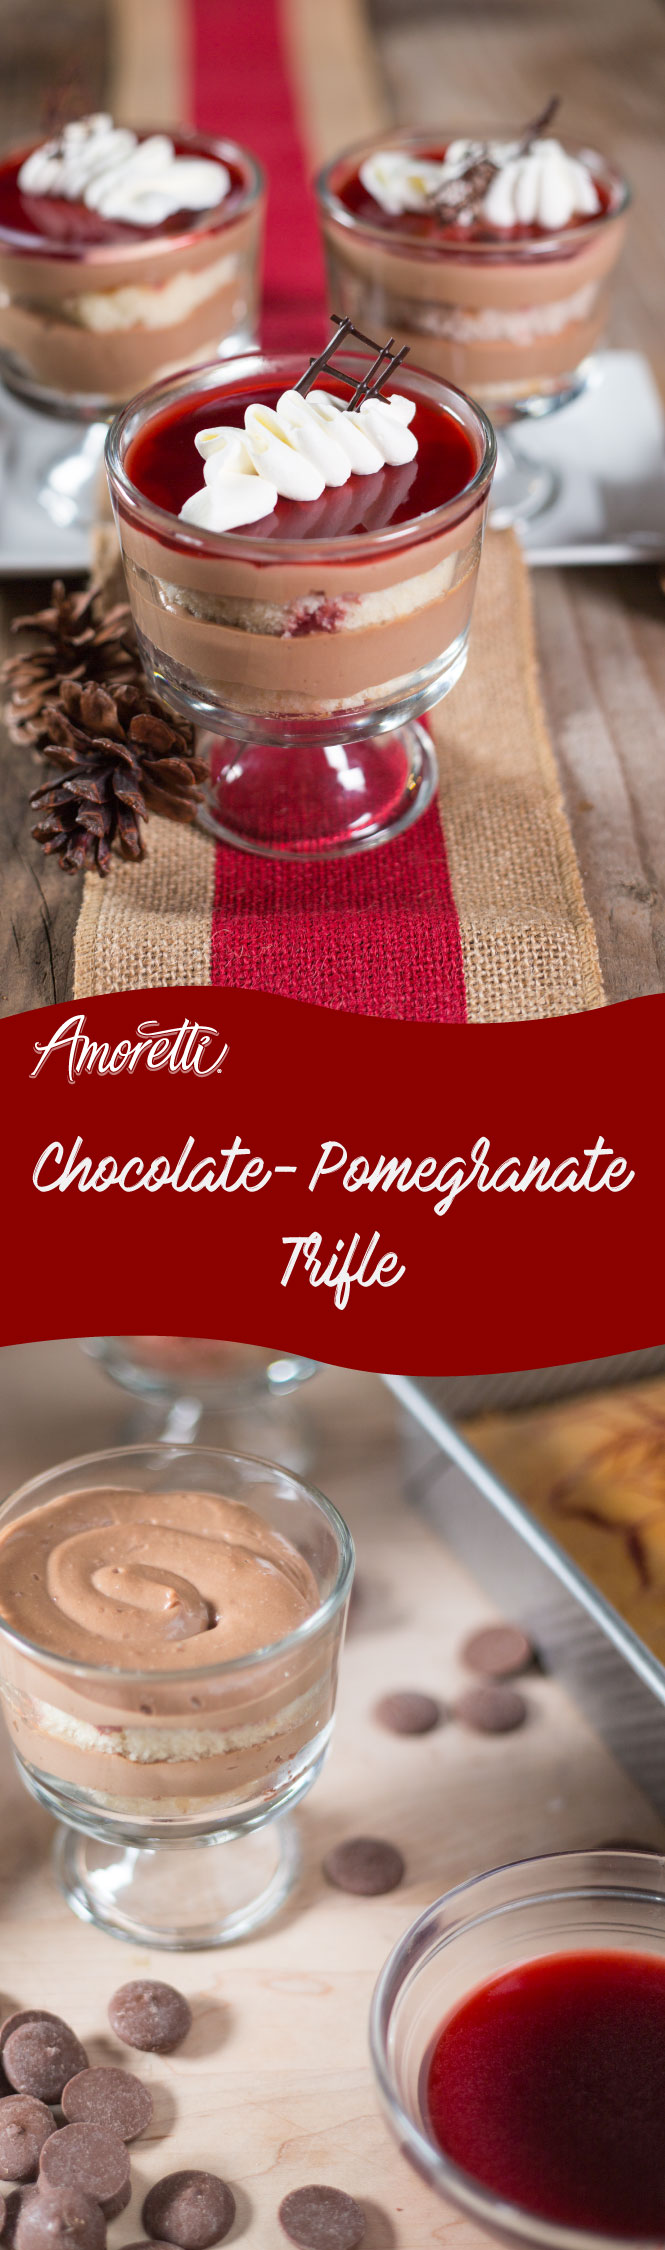 Amoretti Recipe: Chocolate-Pomegranate Trifle